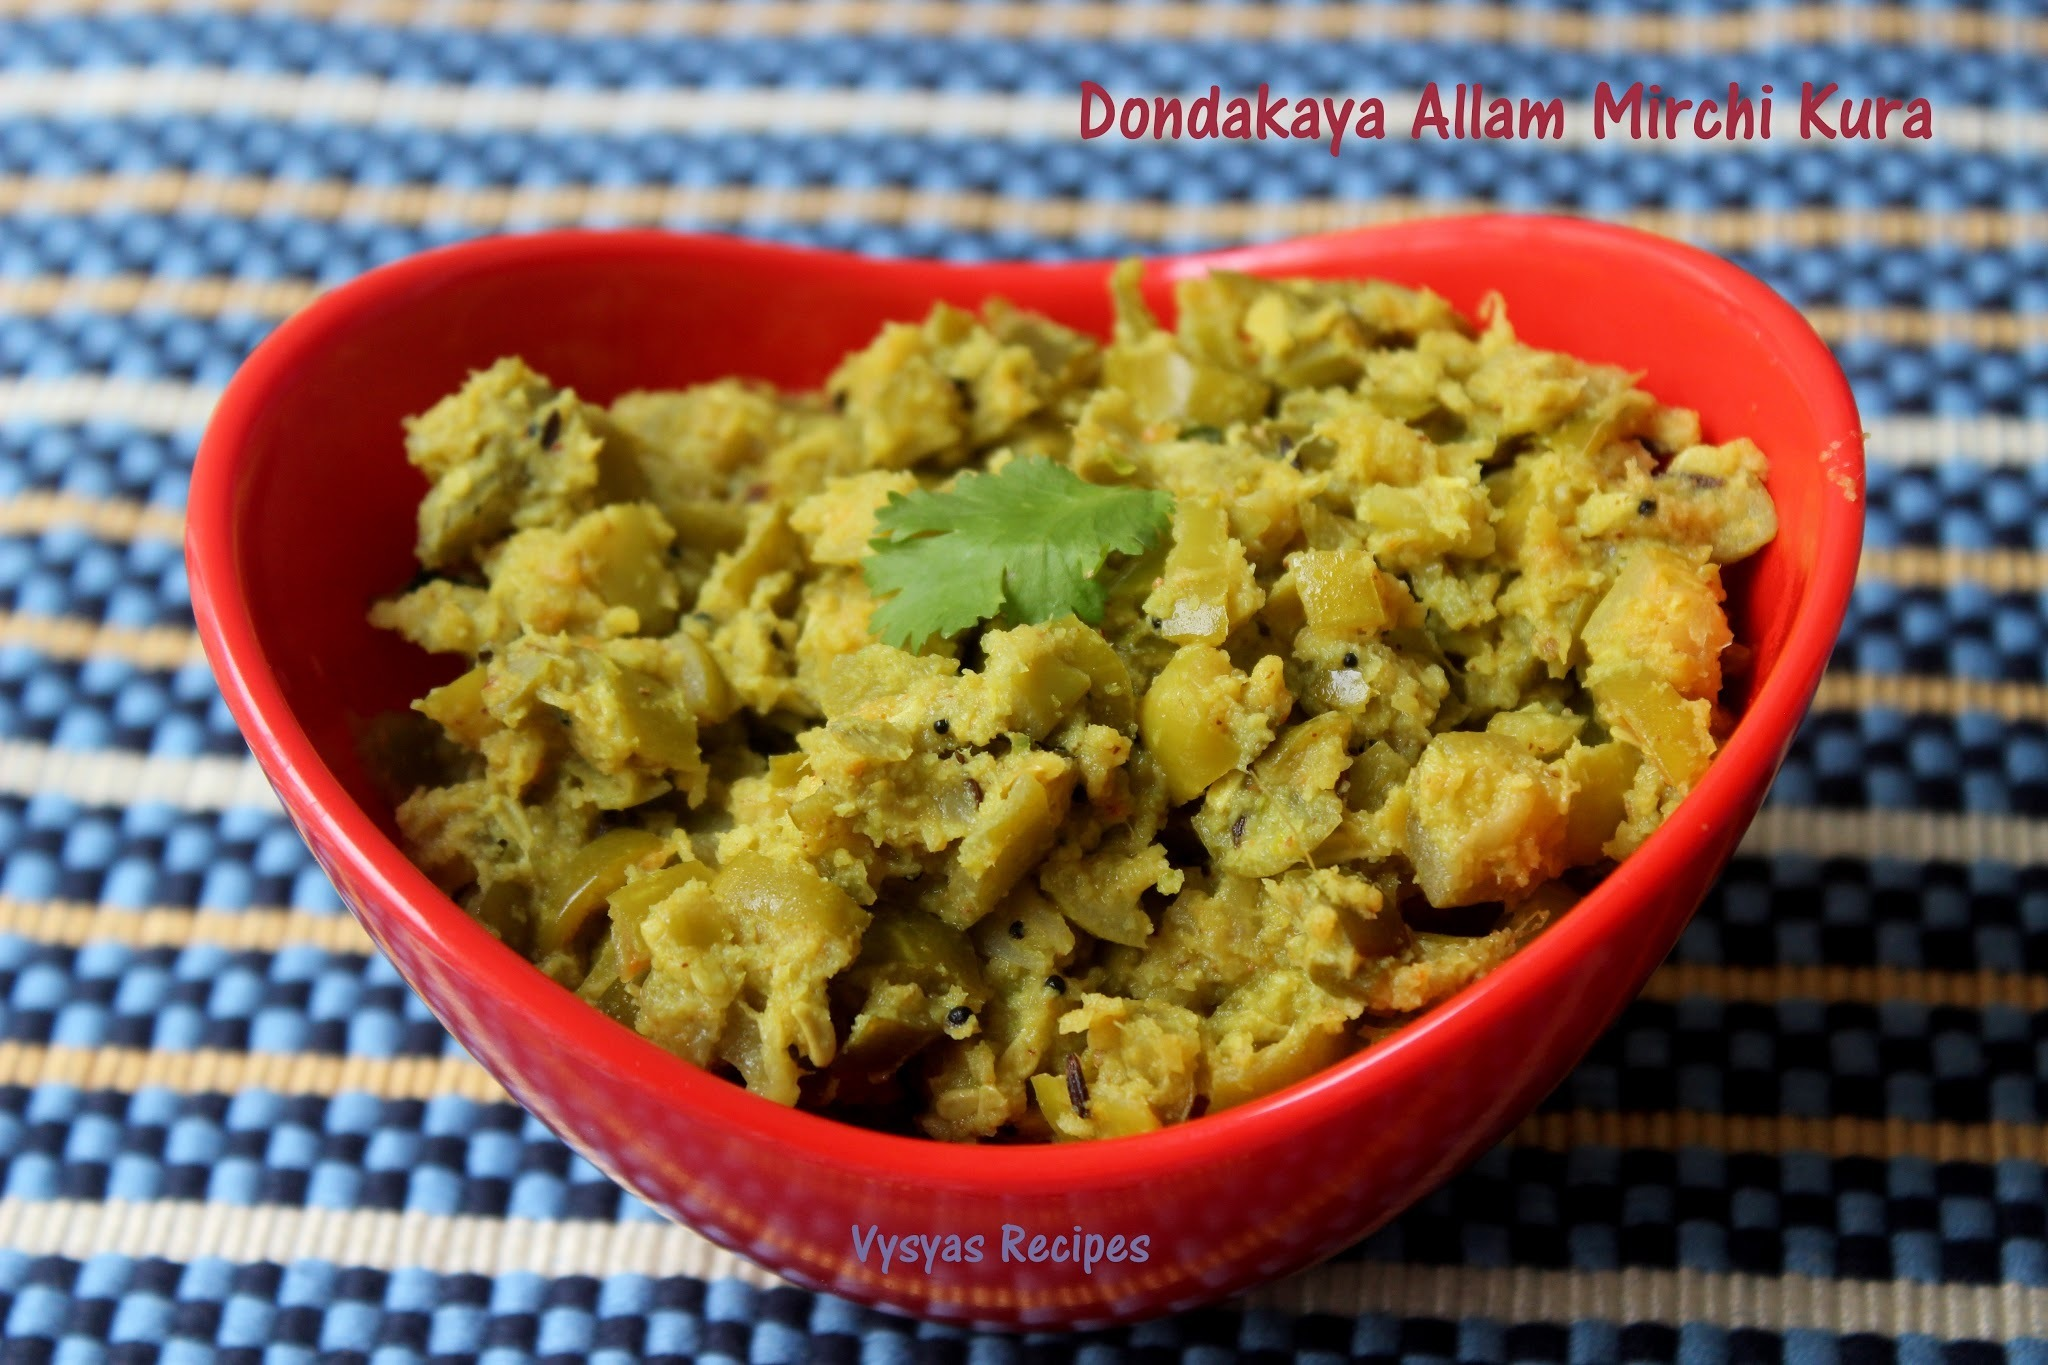 Dondakaya Curry - Easy  Tindora Curry - Dondakaya Allam Mirchi Curry